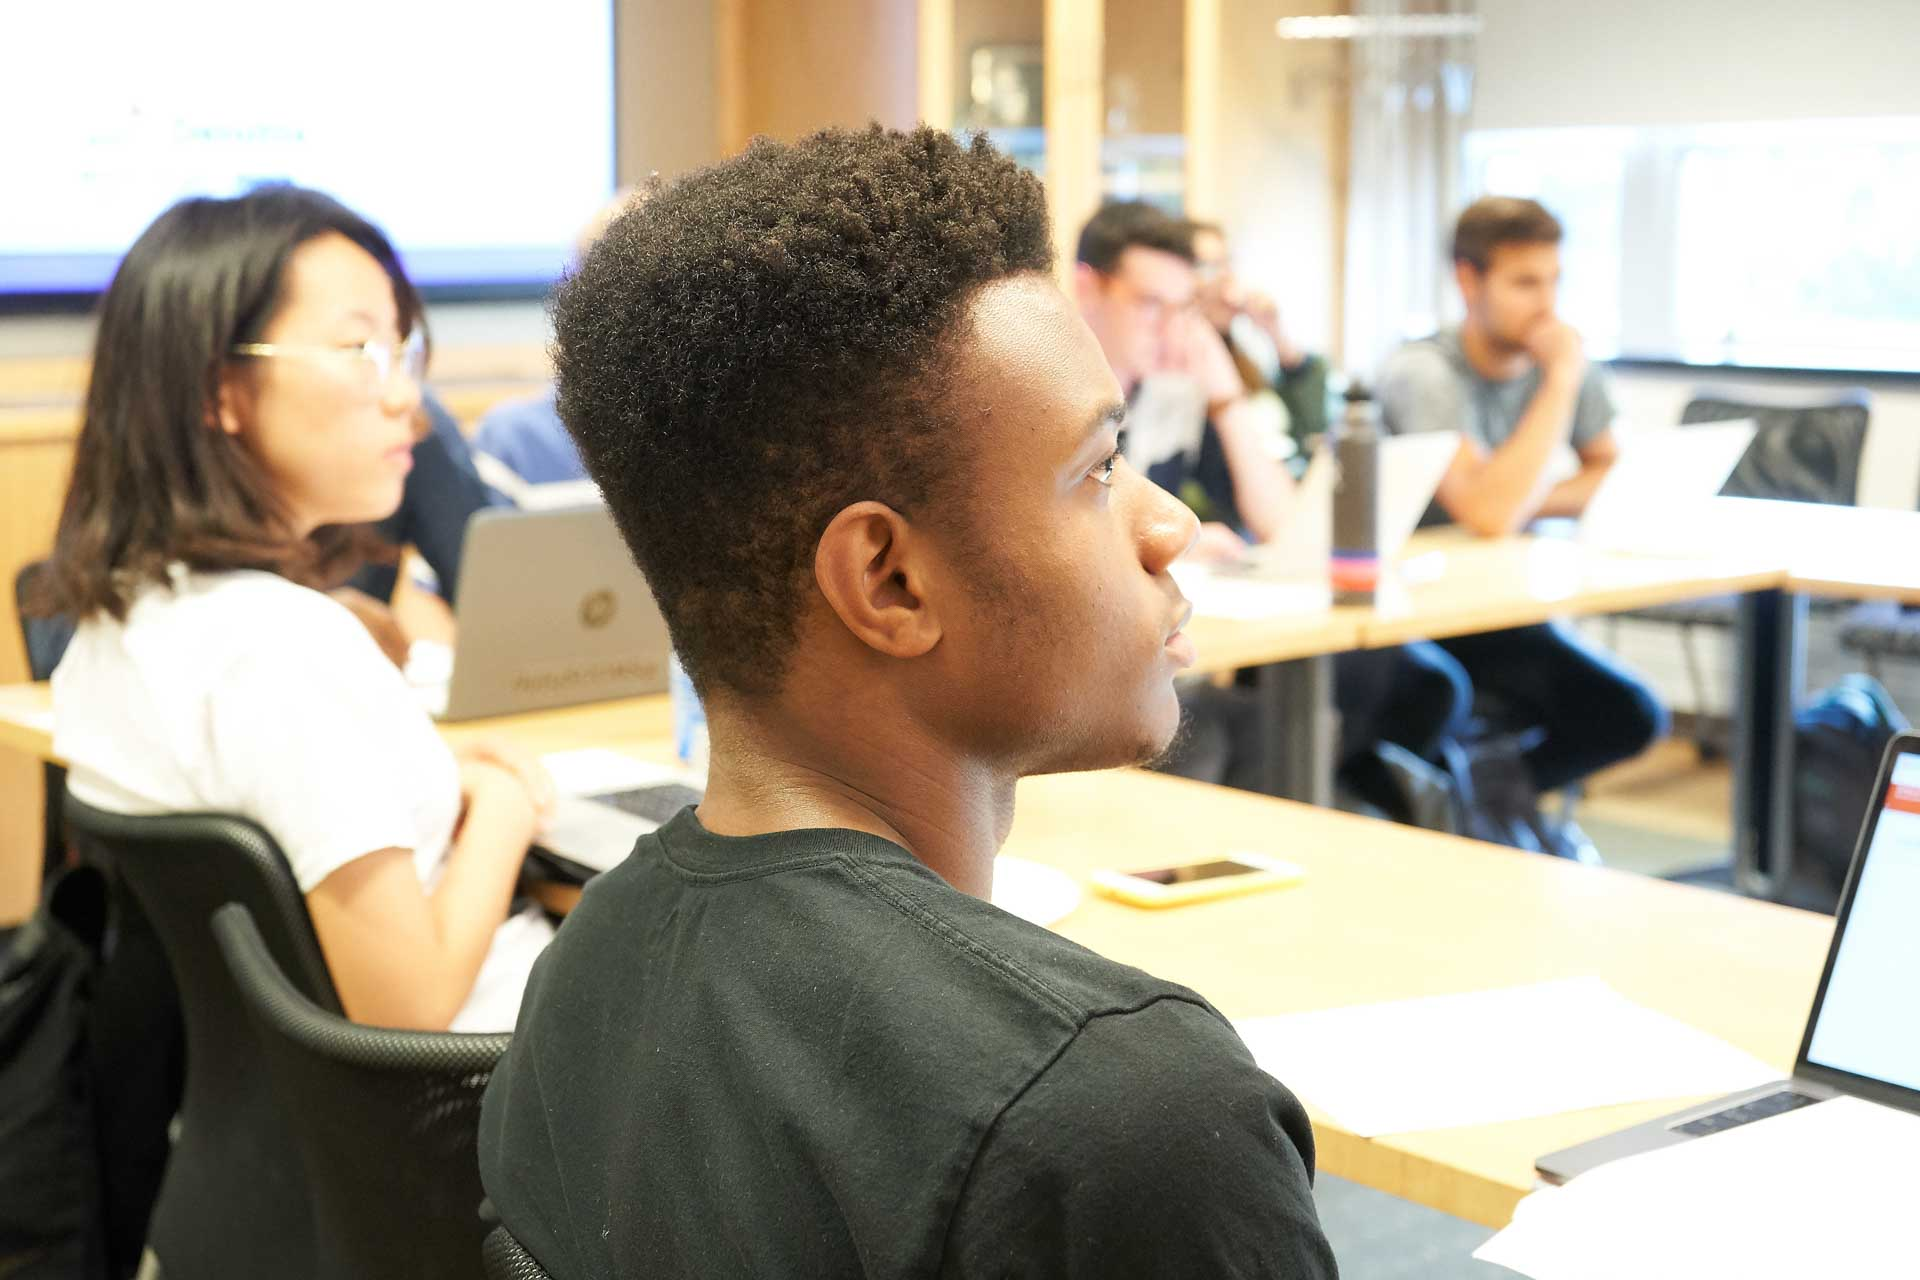 Student looking attentive at lecturer